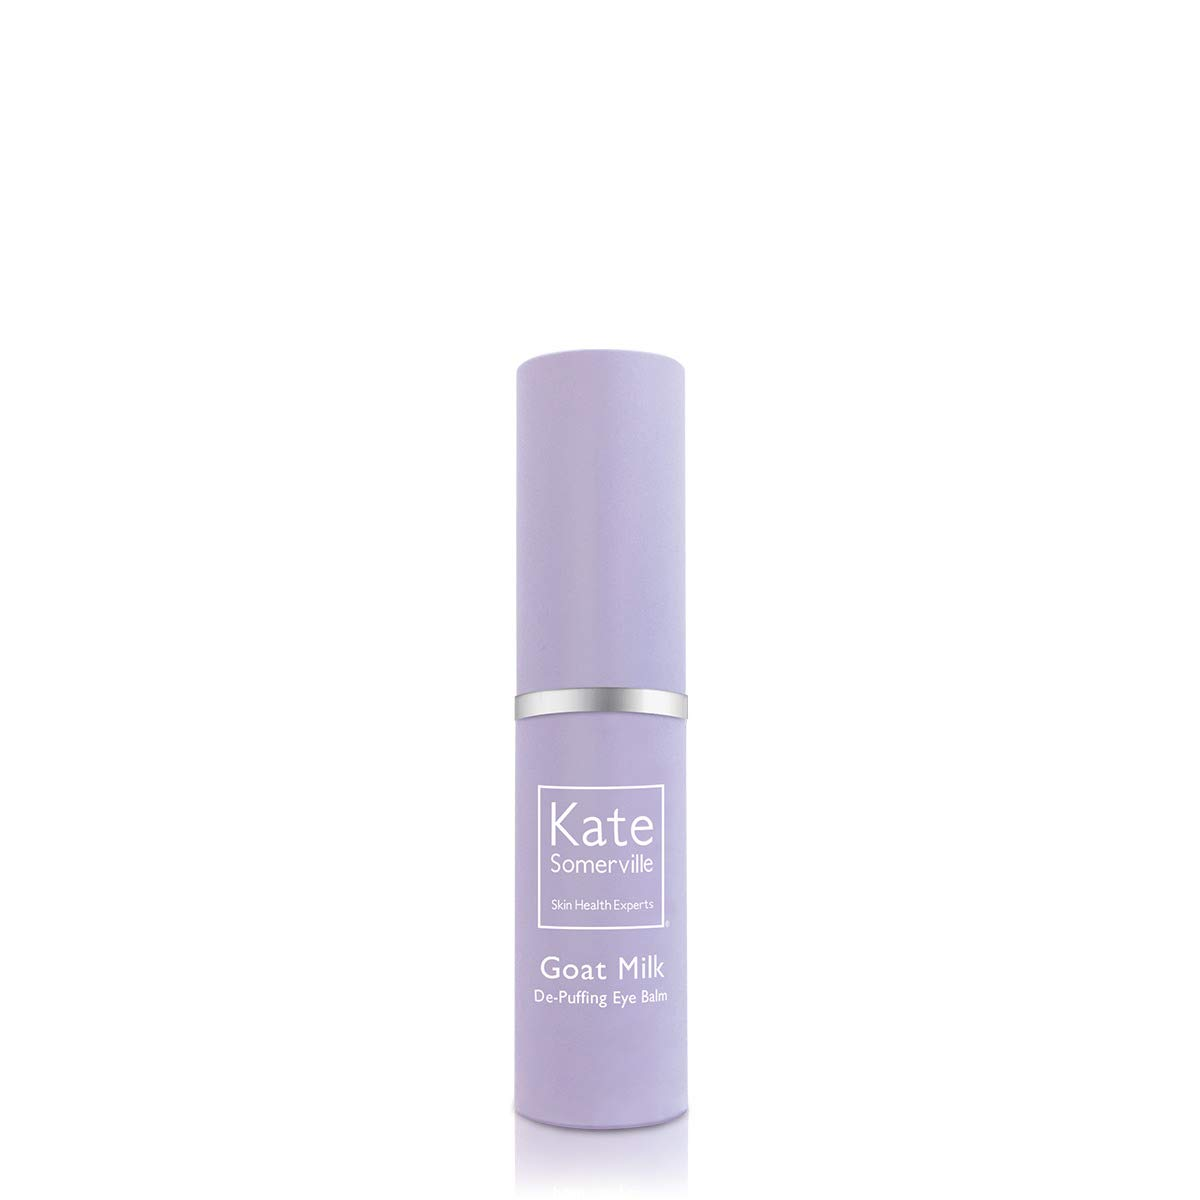 Kate Somerville Goat Milk De-Puffing Eye Balm 813920015319